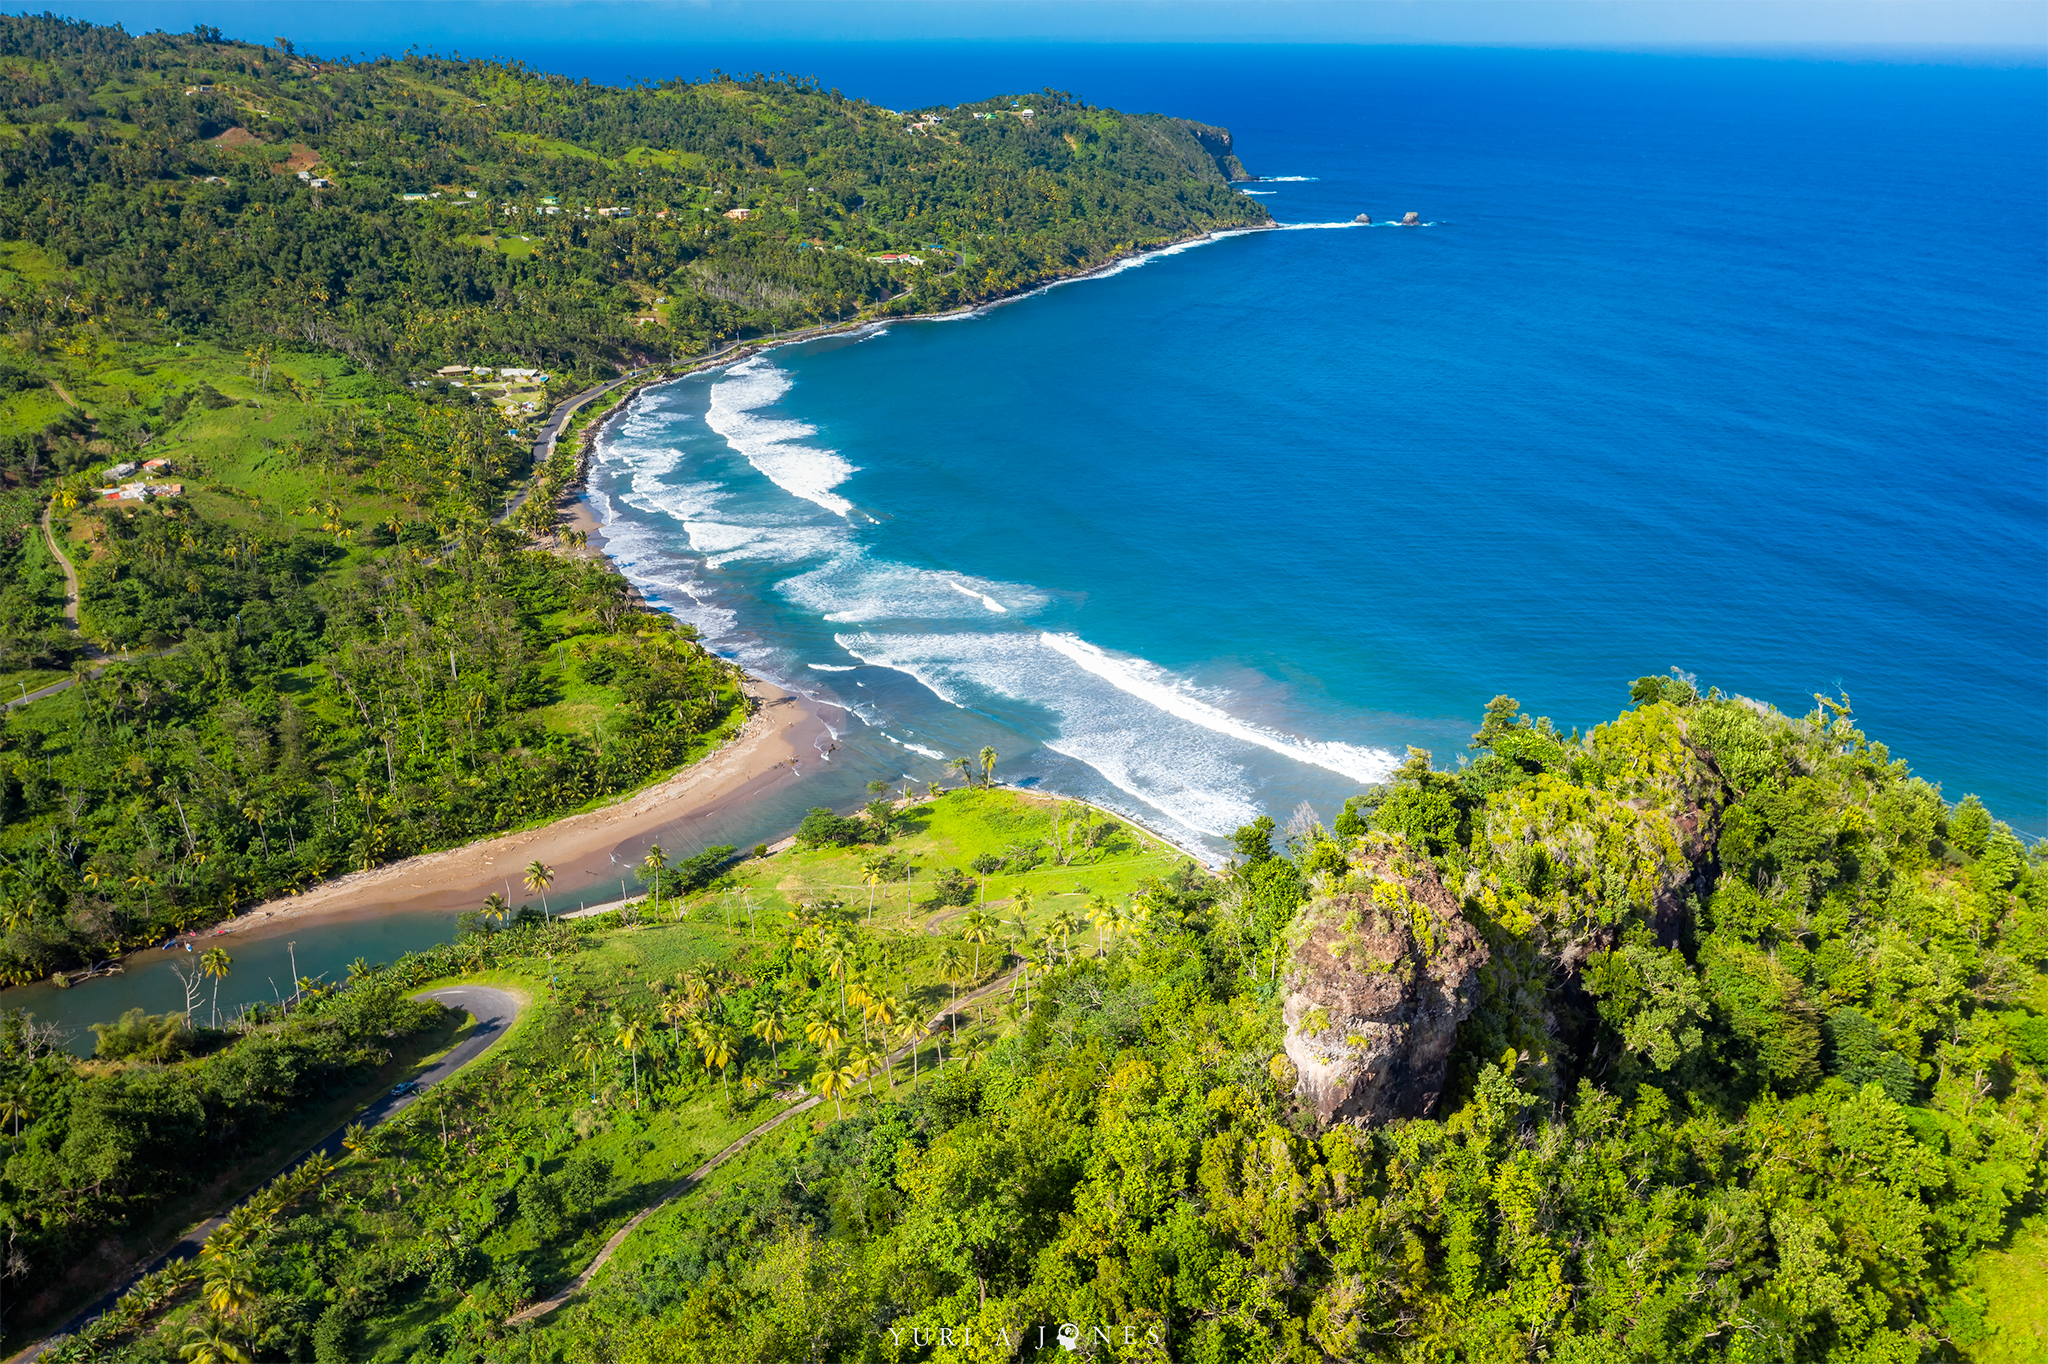 FEATURED PHOTO: Pagua Bay from the Antrizzle Road